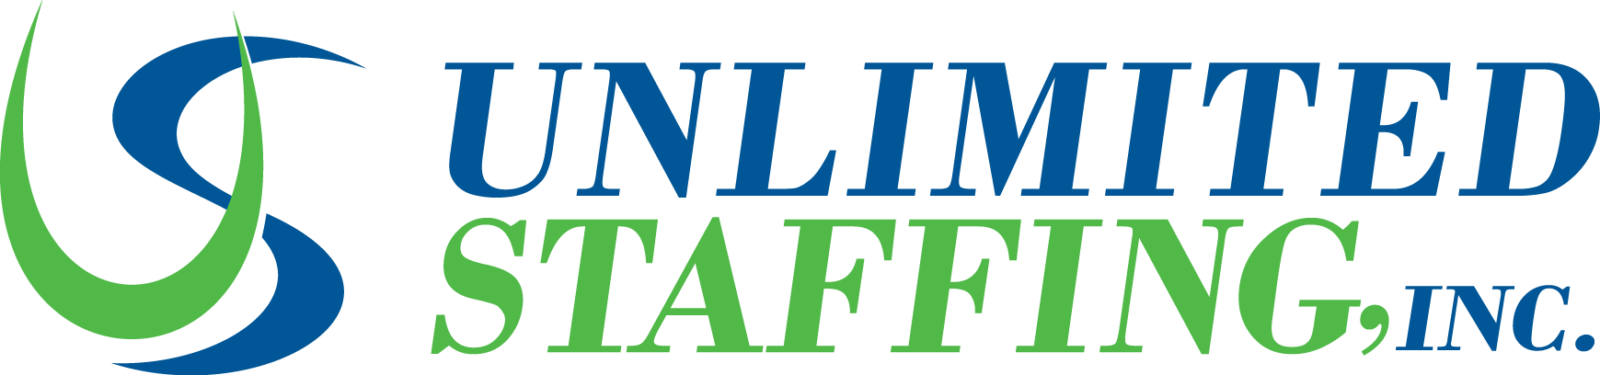 Unlimited Staffing INC. Logo